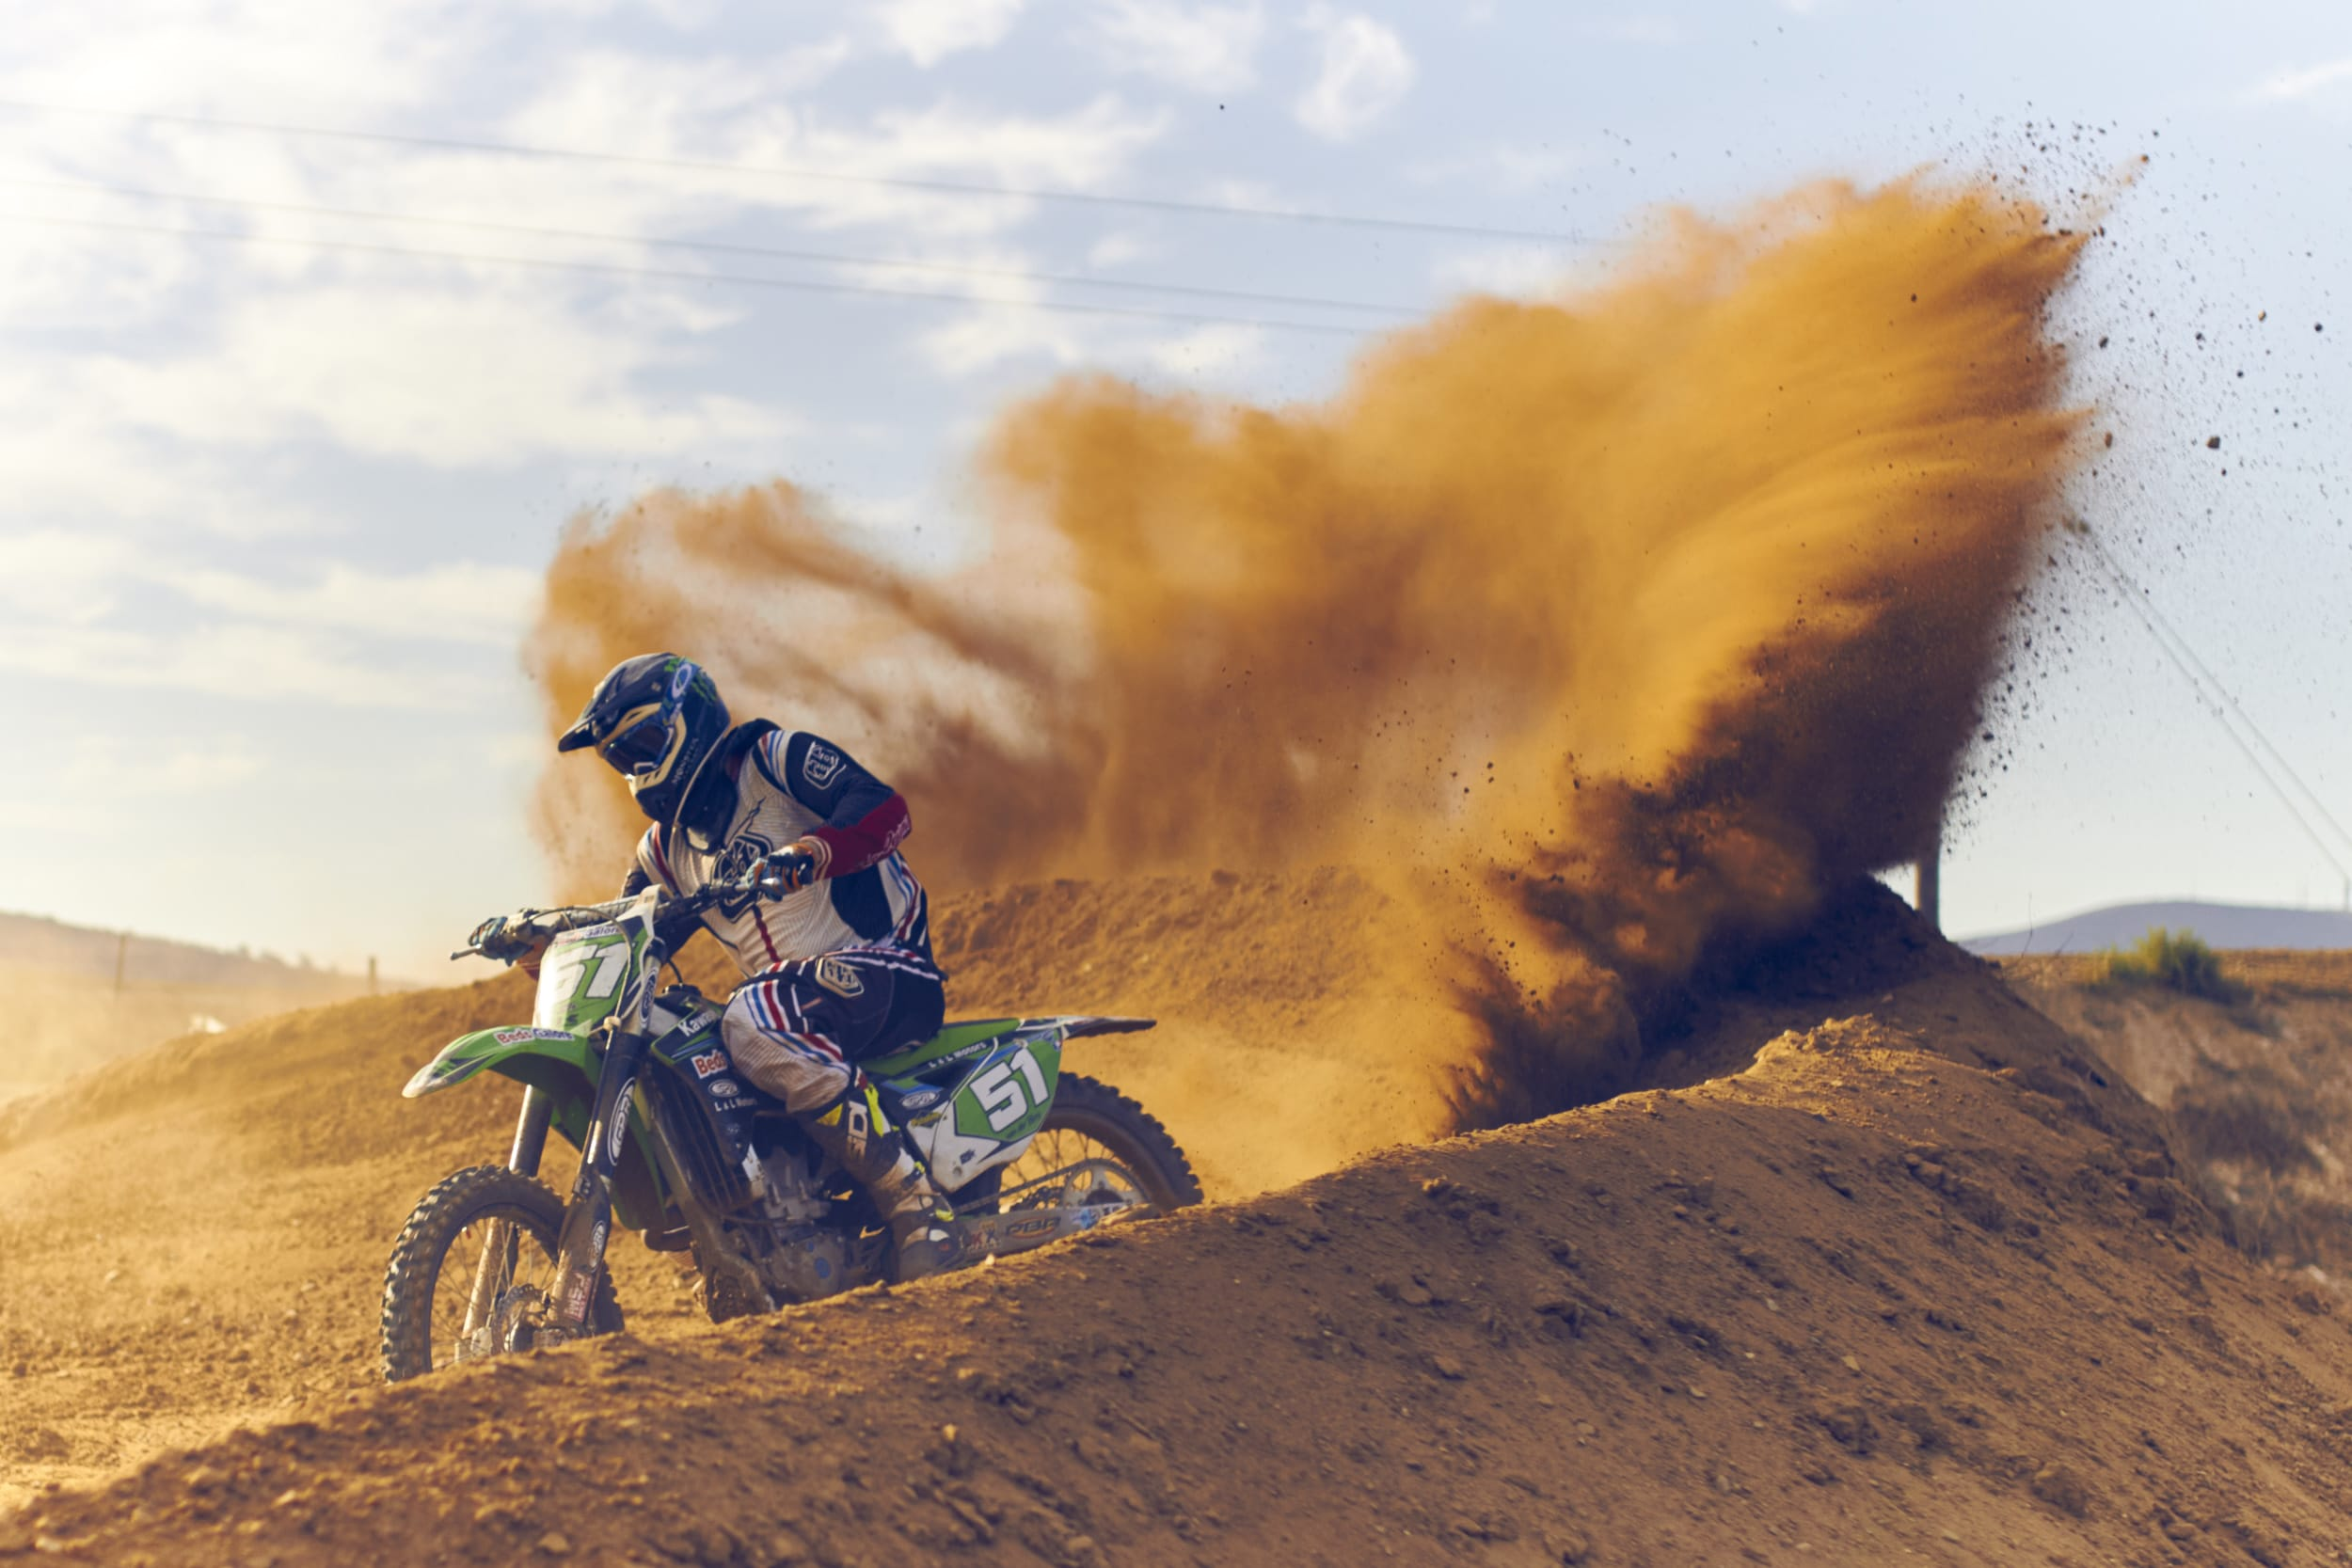 cpt_motorcross 391 ©martinsass